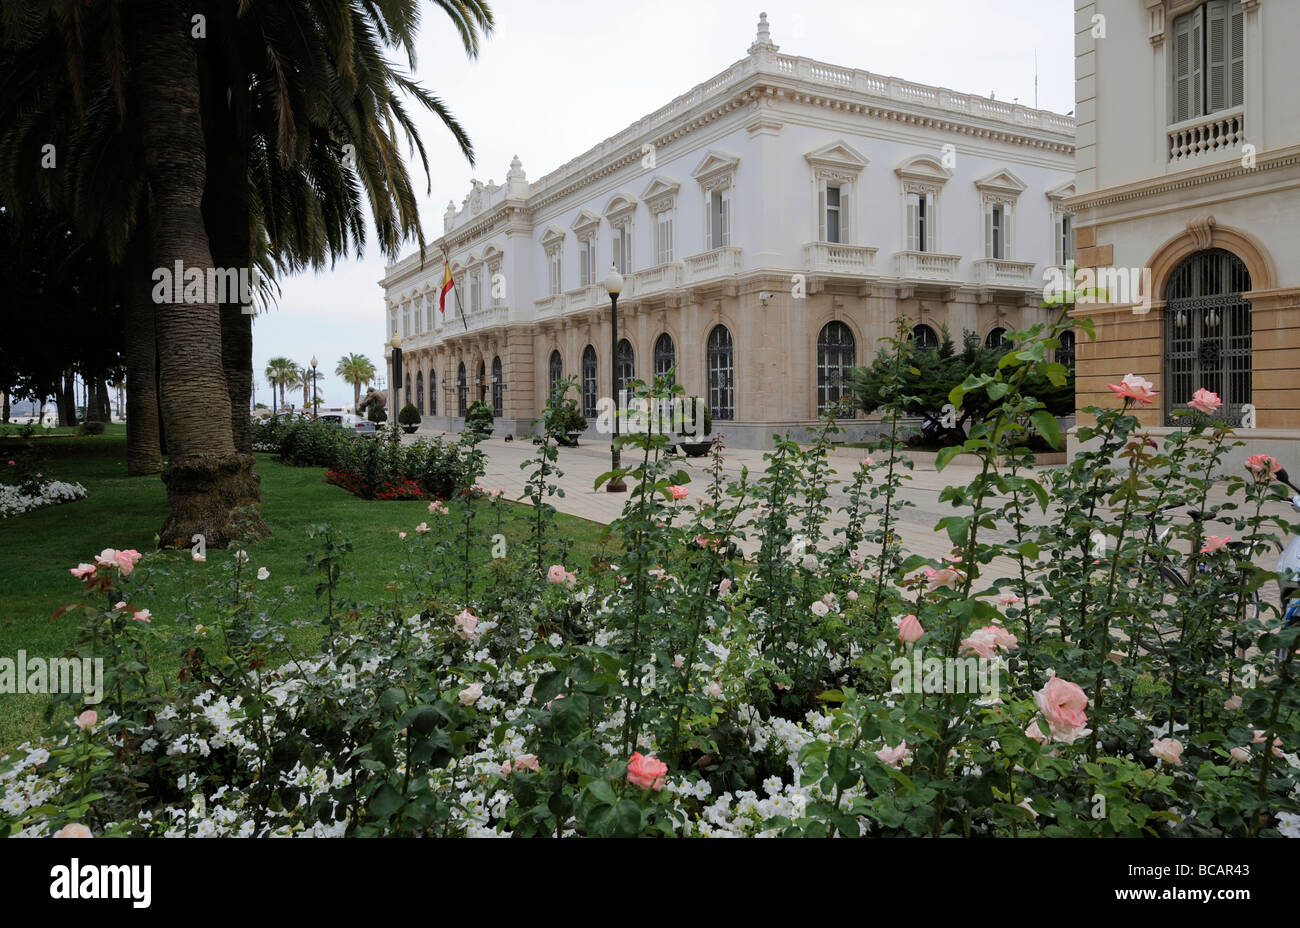 Cartagena local government buildings and gardens, Spain - Stock Image